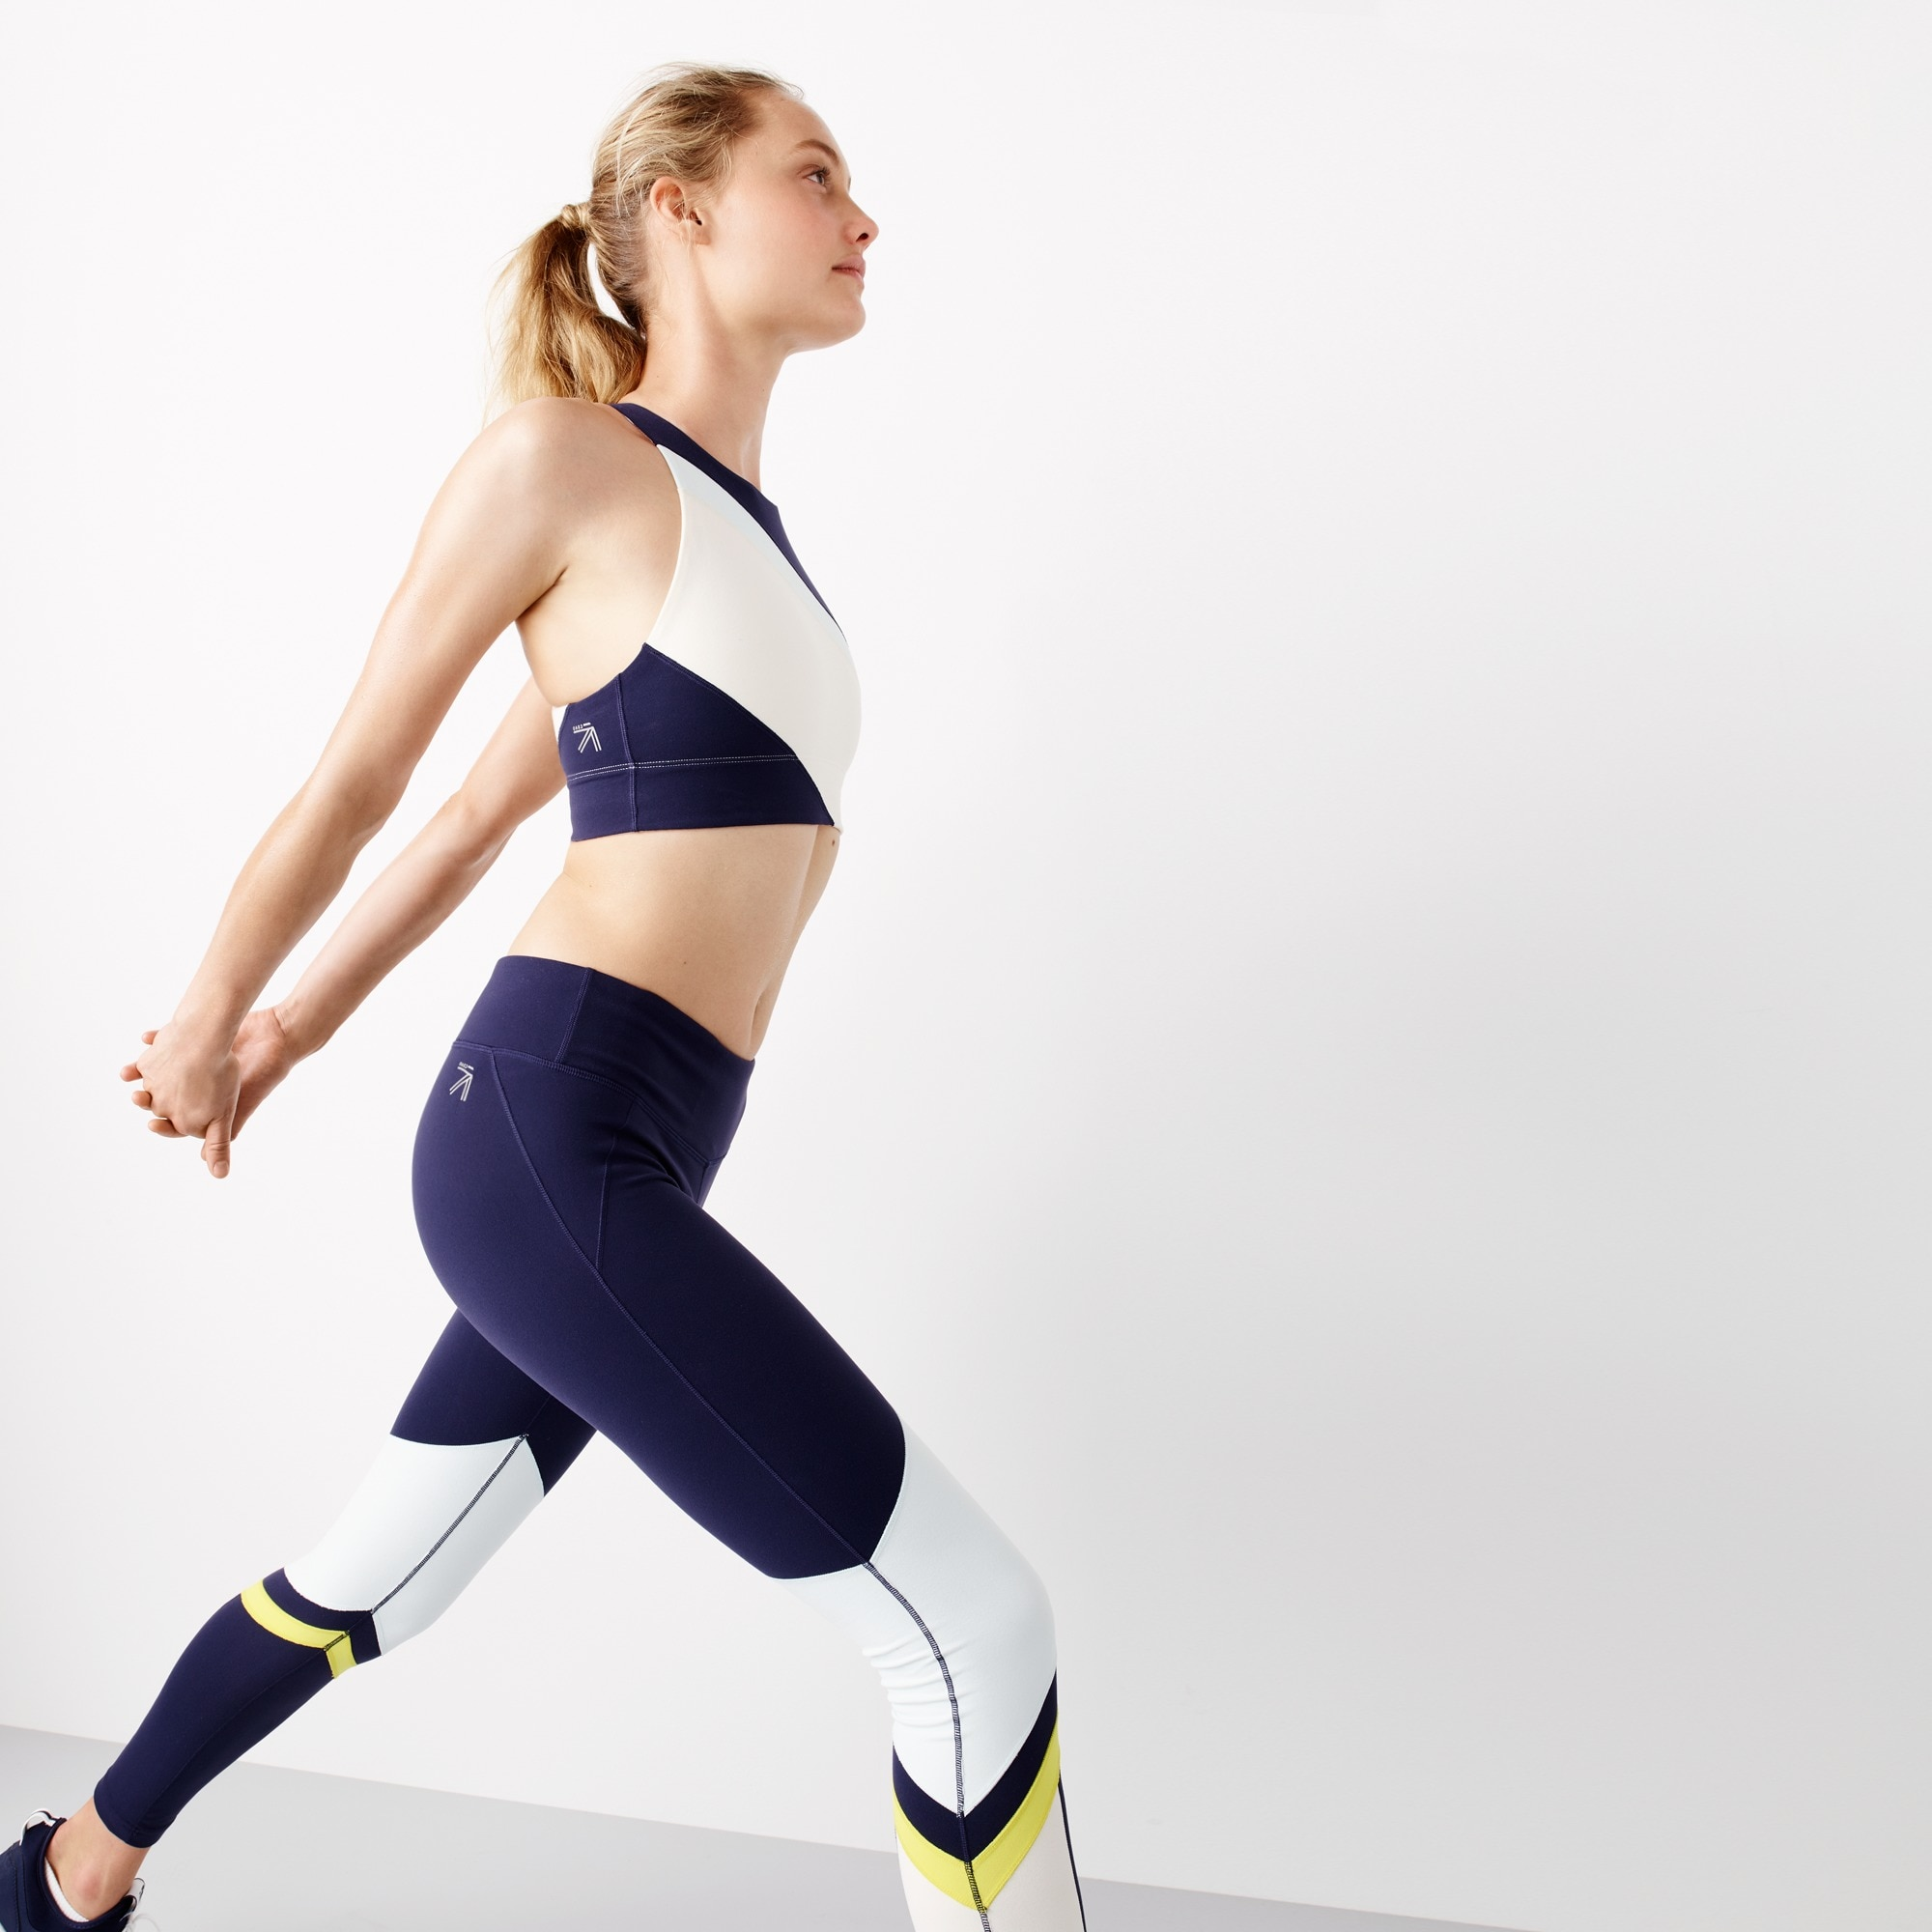 Image 1 for New Balance® for J.Crew performance crop top in striped colorblock